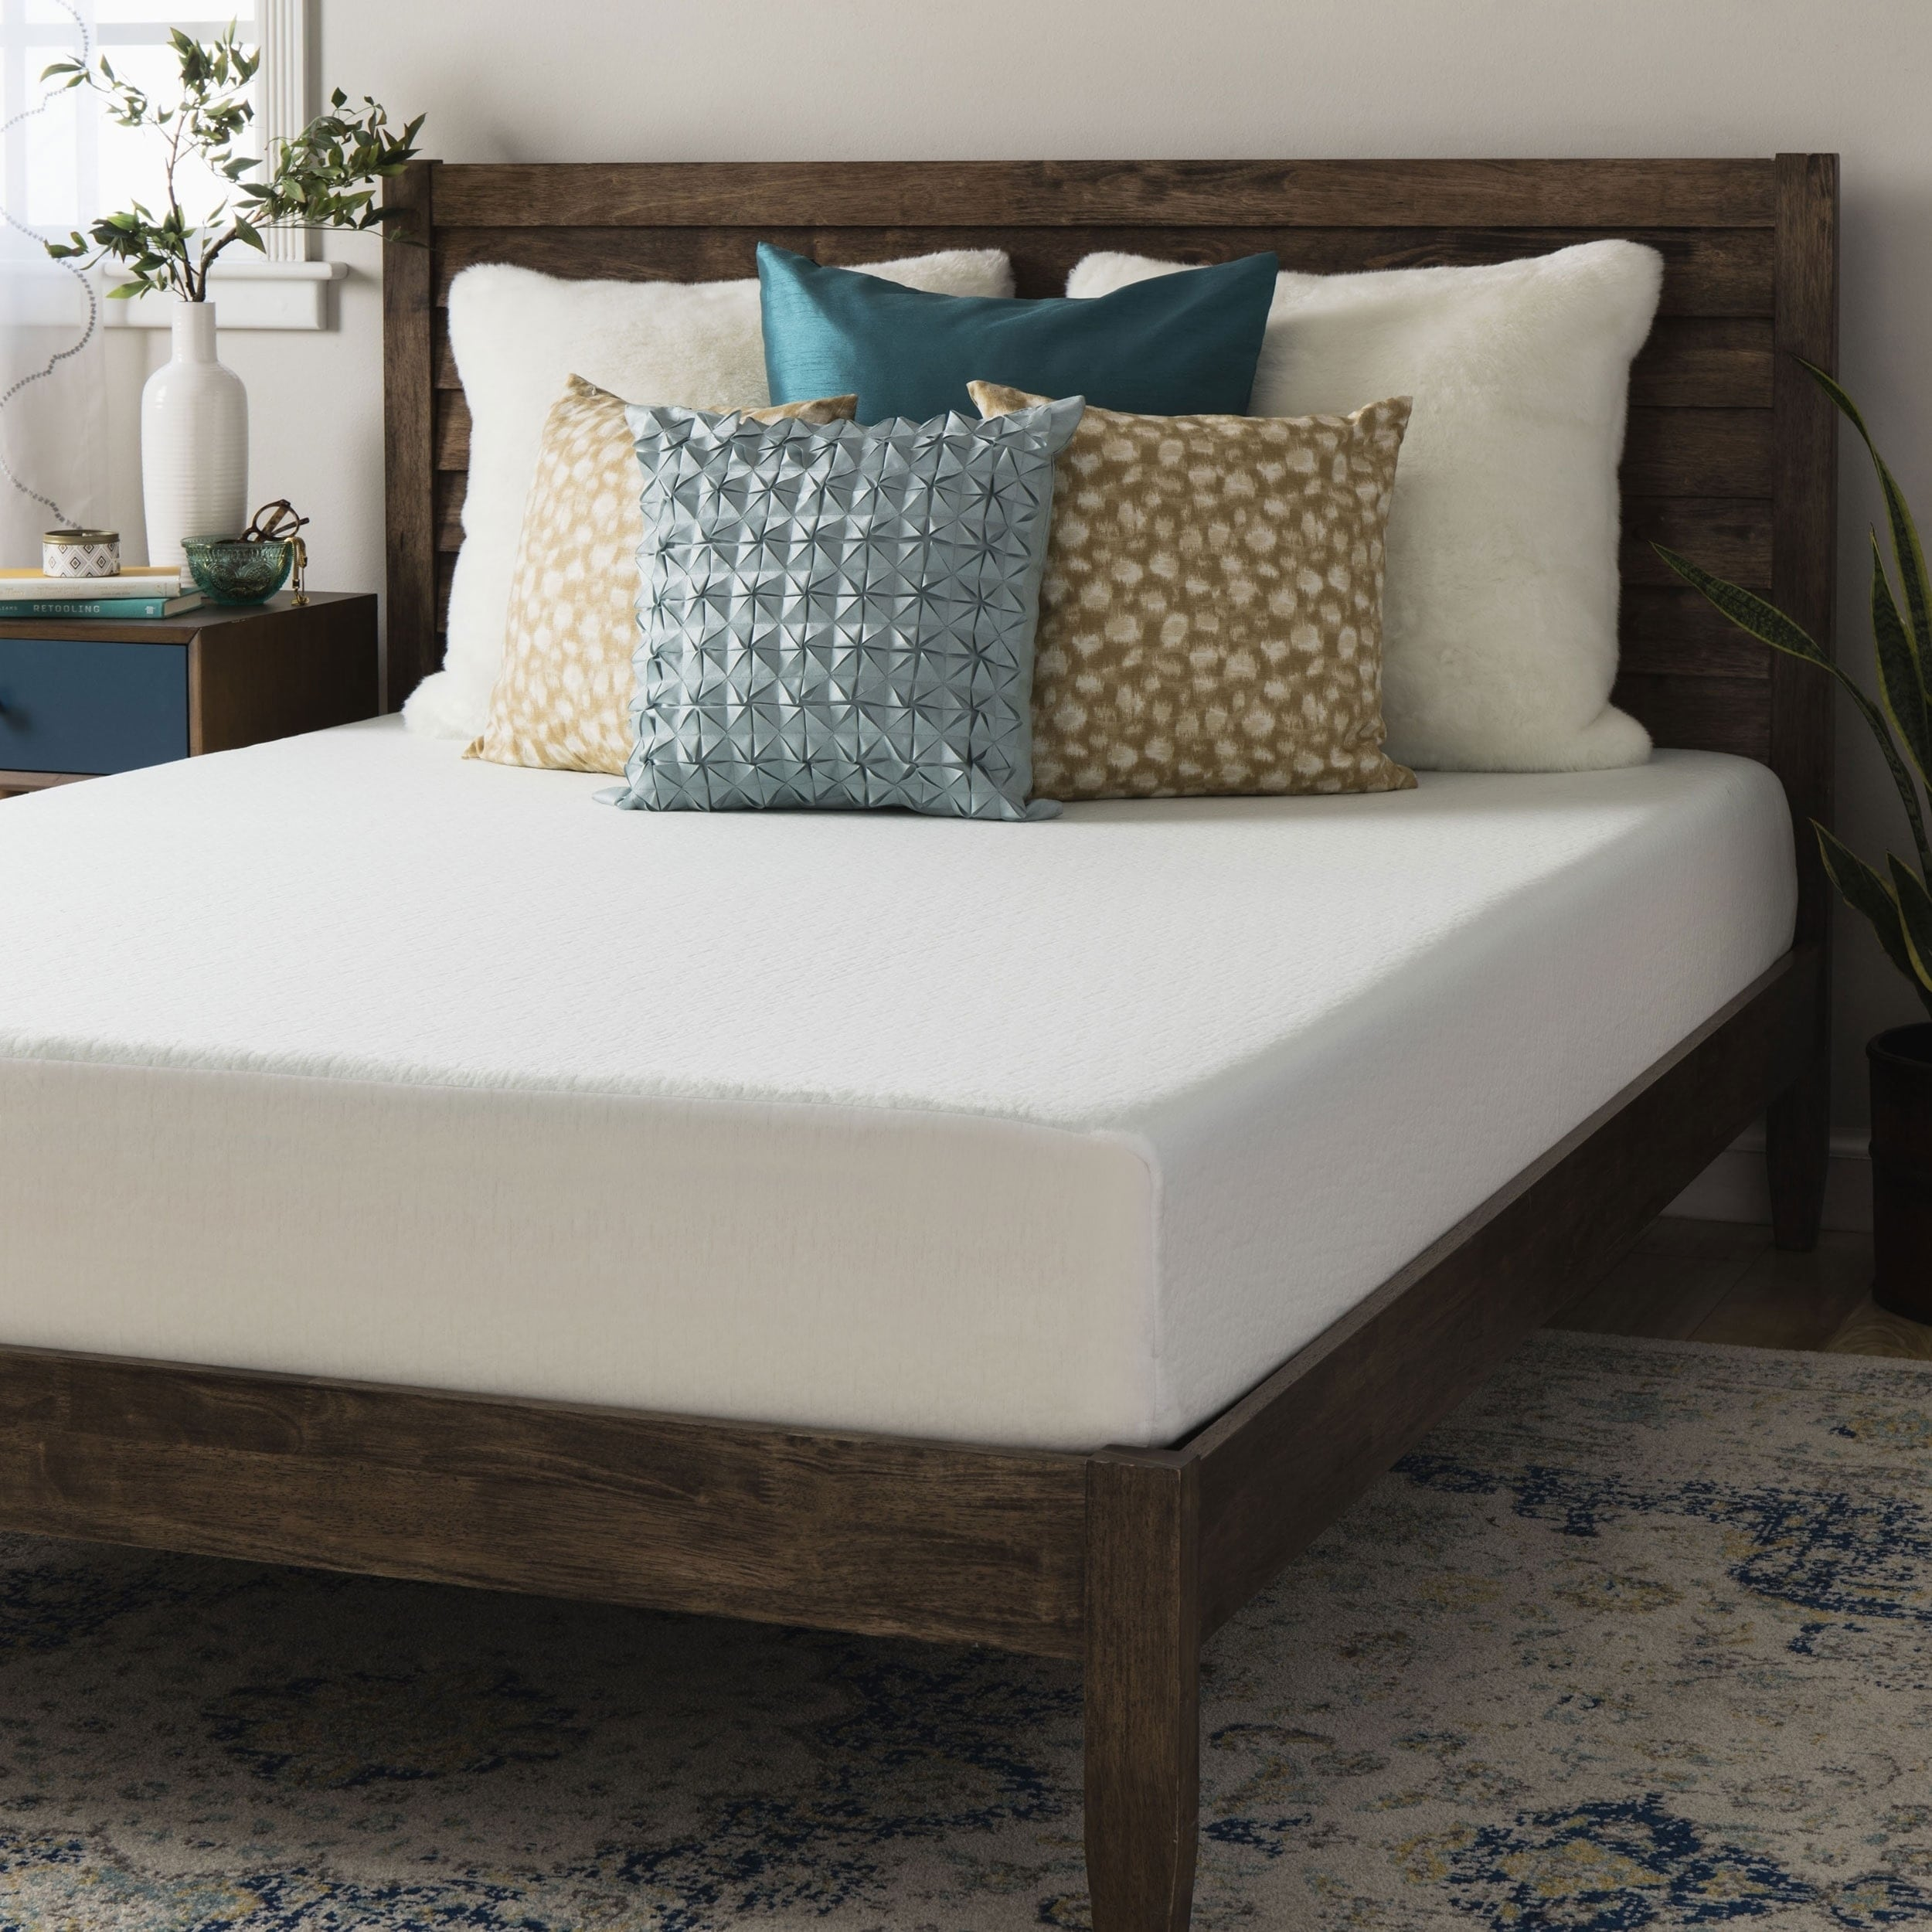 Crown Comfort 8-inch Twin XL-size Memory Foam Mattress (8...